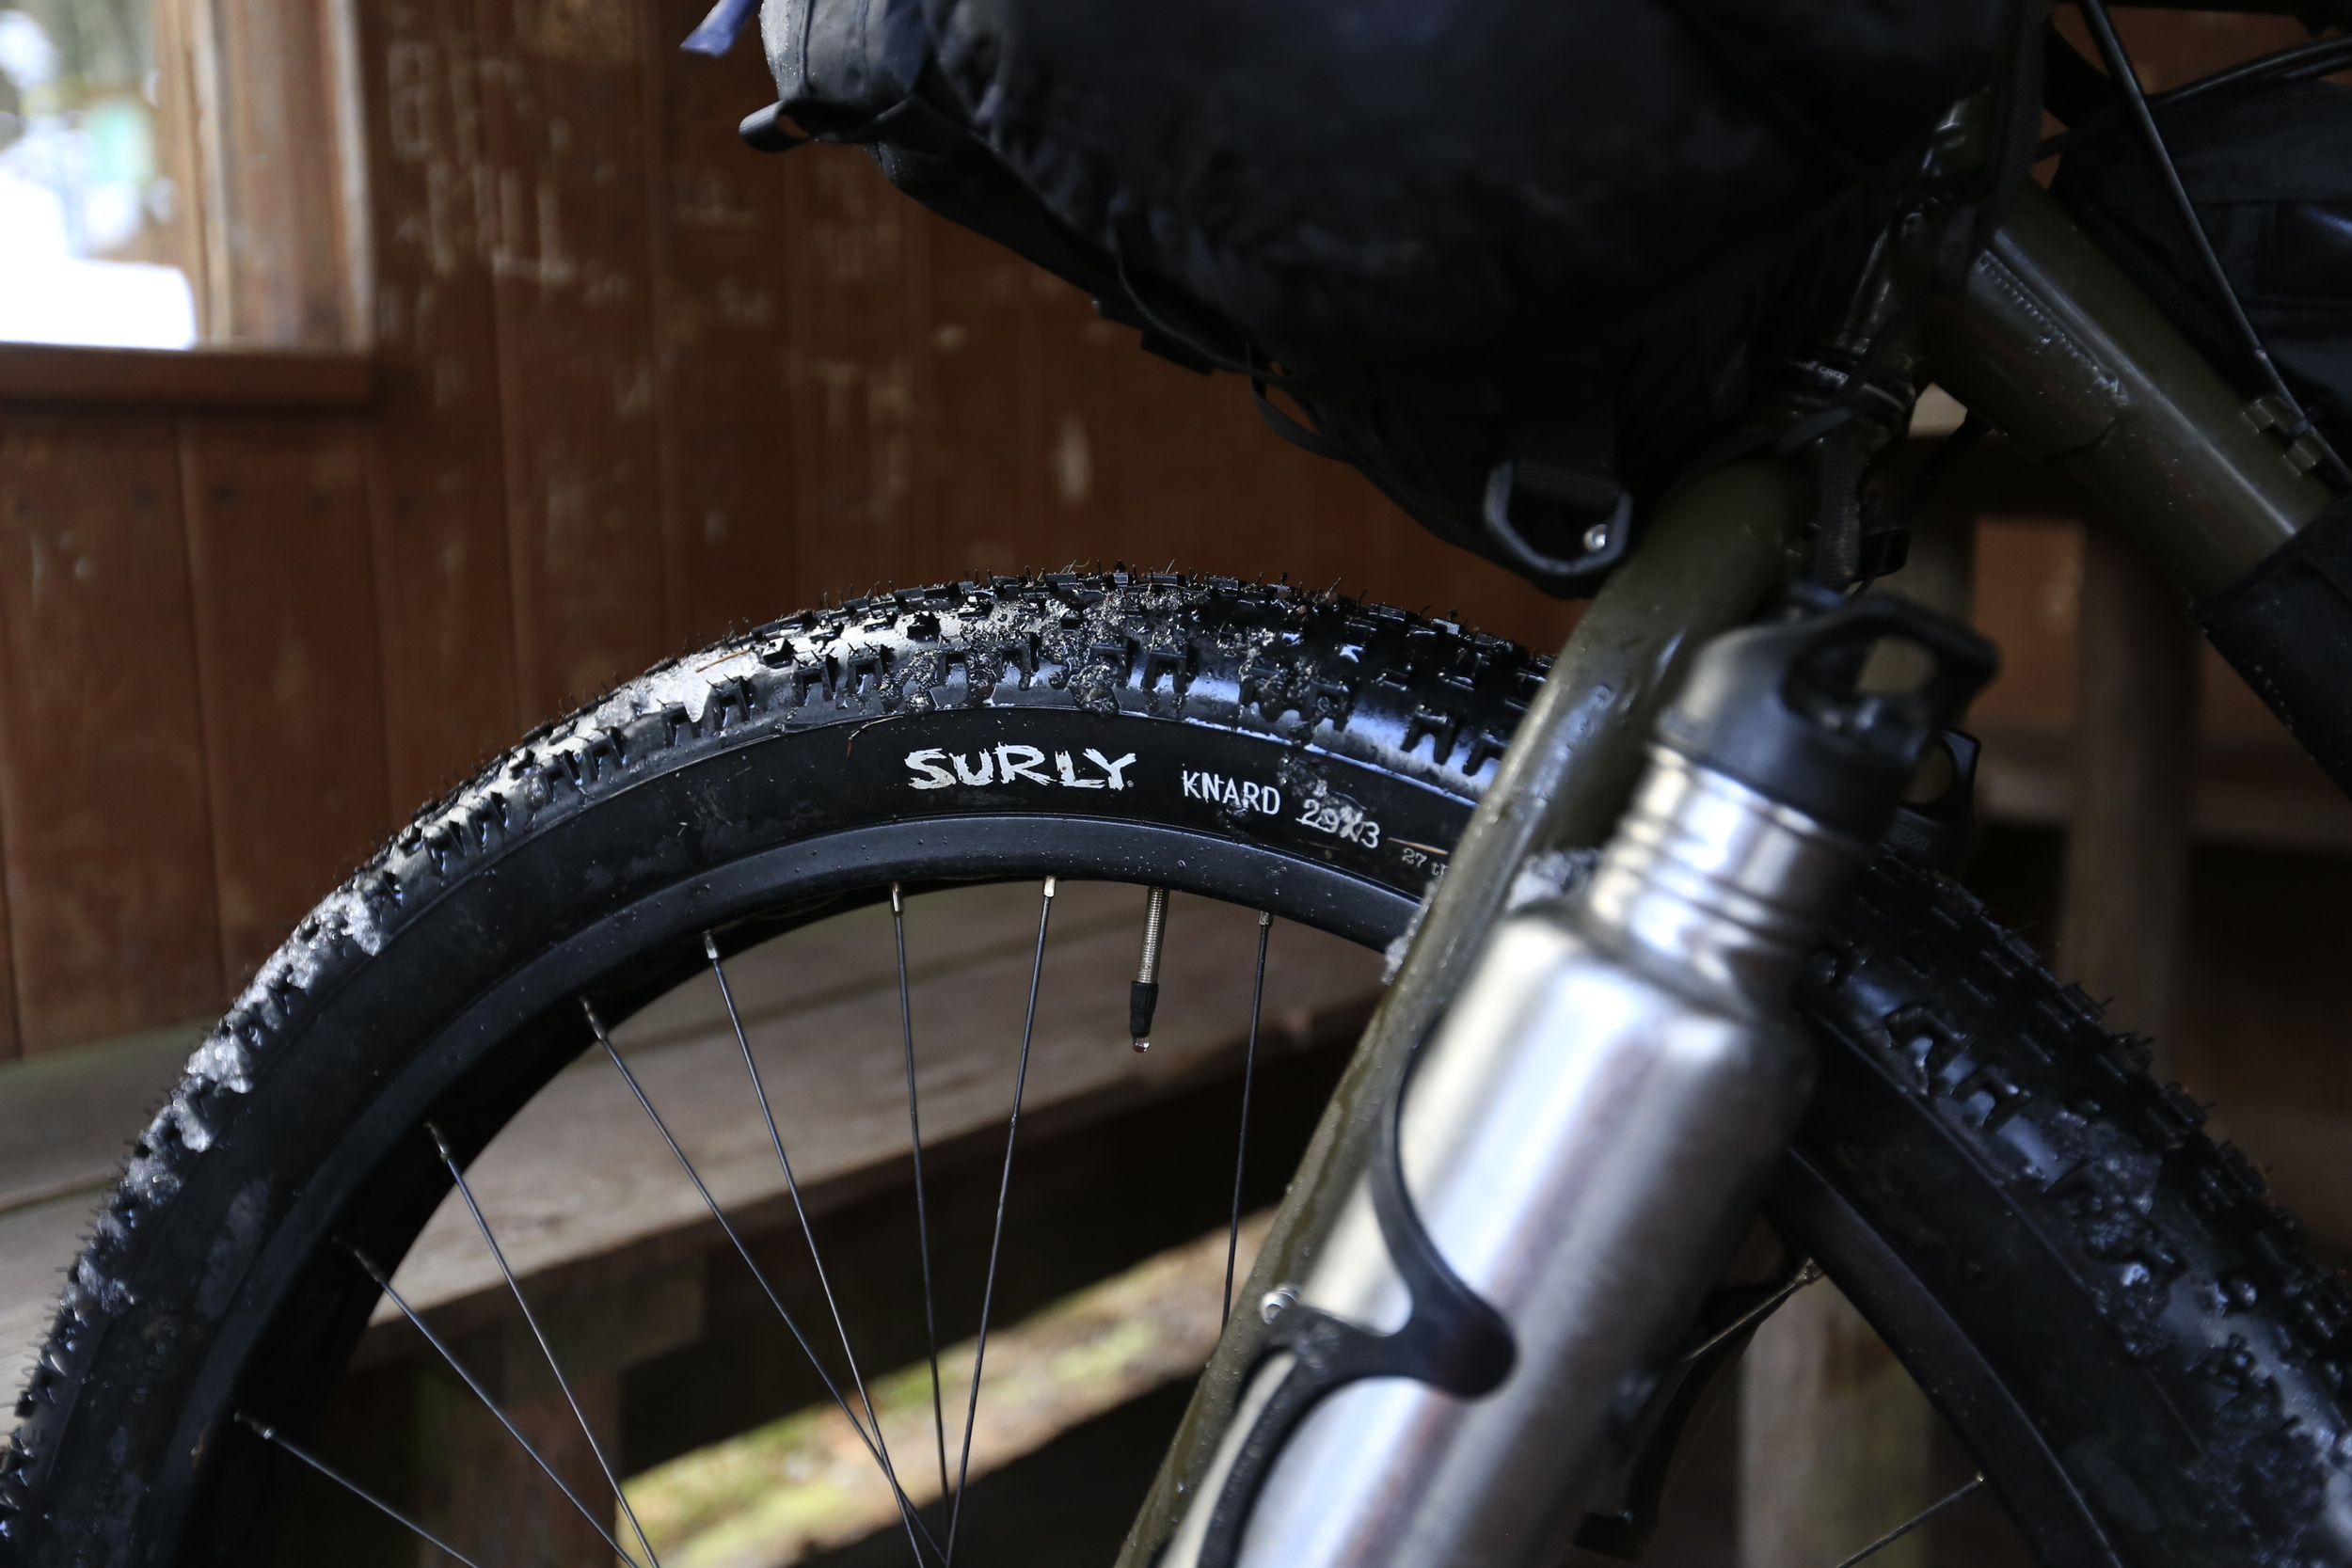 "Surly's almighty   29 x 3"" Knards   didn't concede a single puncture and provided excellent grip on wet mud, gravel and snow."